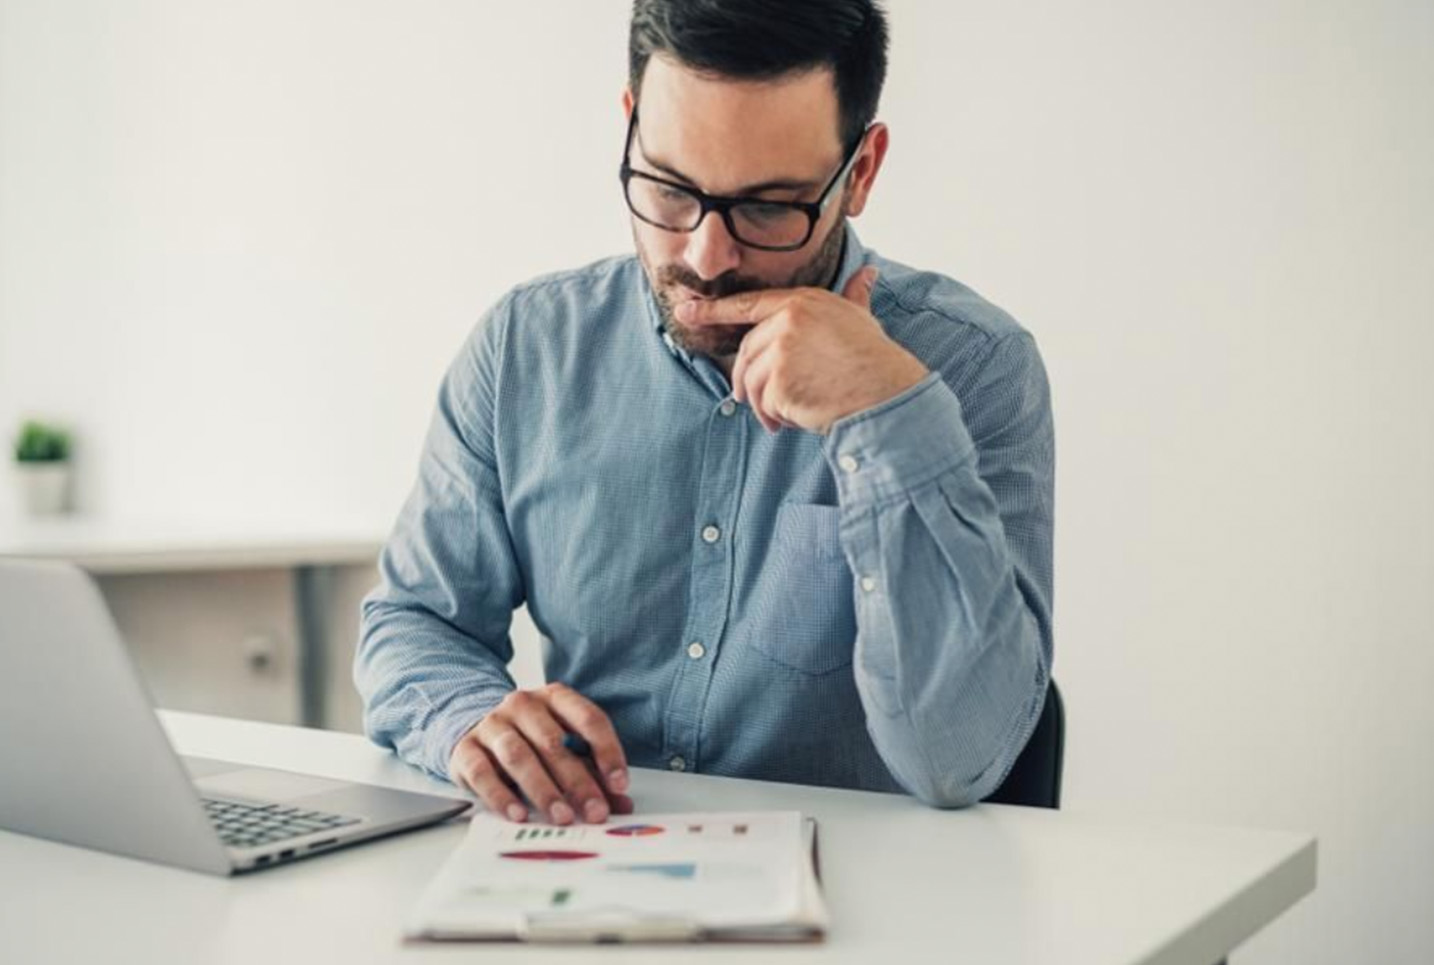 Should You Launch Your Own Company? Consider The Financial Risk